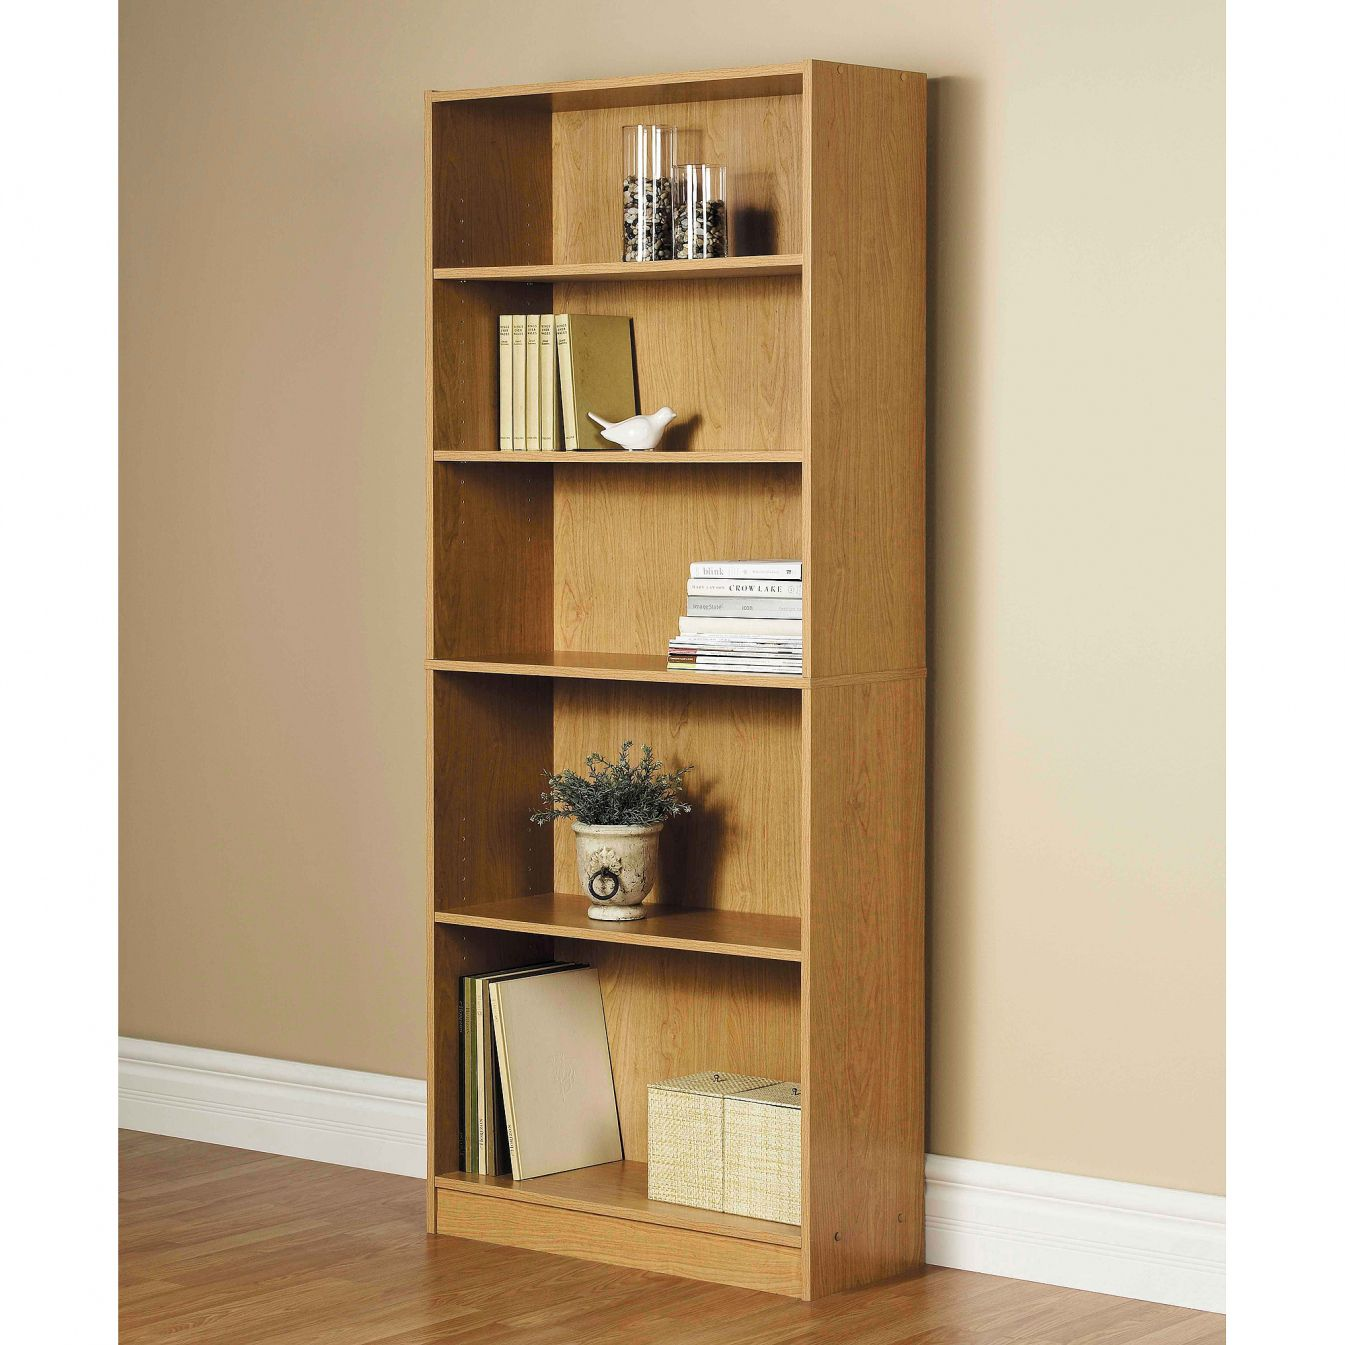 100 6 Foot Wide Bookcase Contemporary Modern Furniture Check More At Http